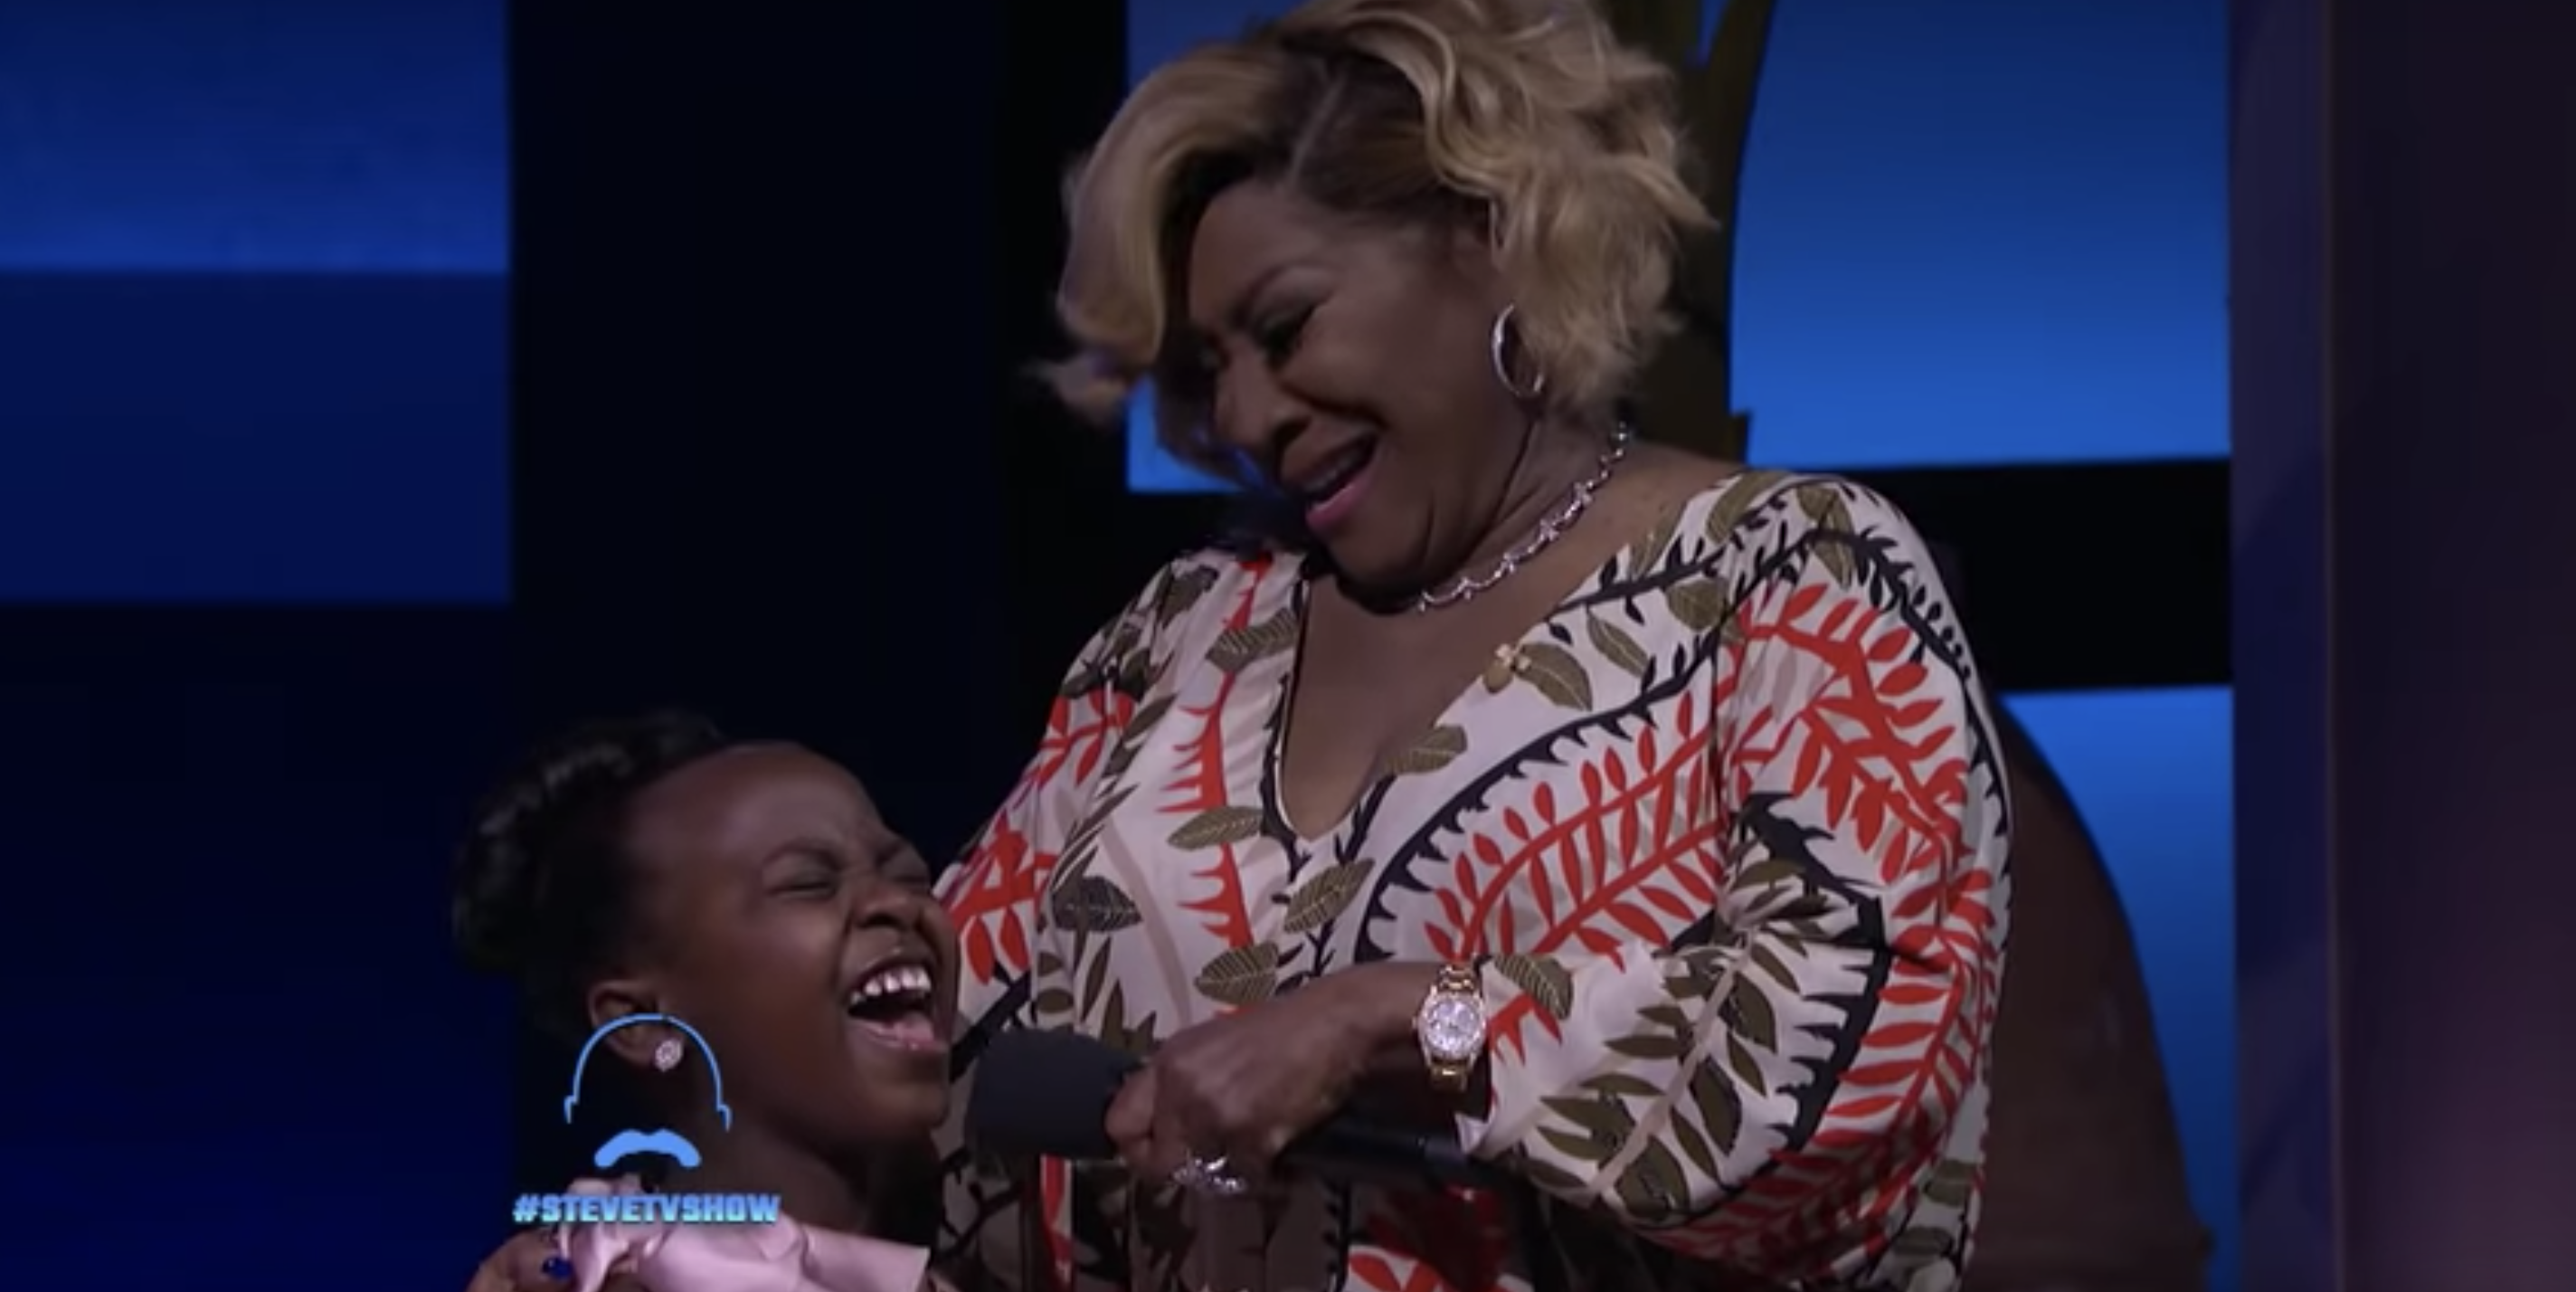 Patti Labelle Surprising a Young Fan on the Steve Harvey Show Will Make Your Day